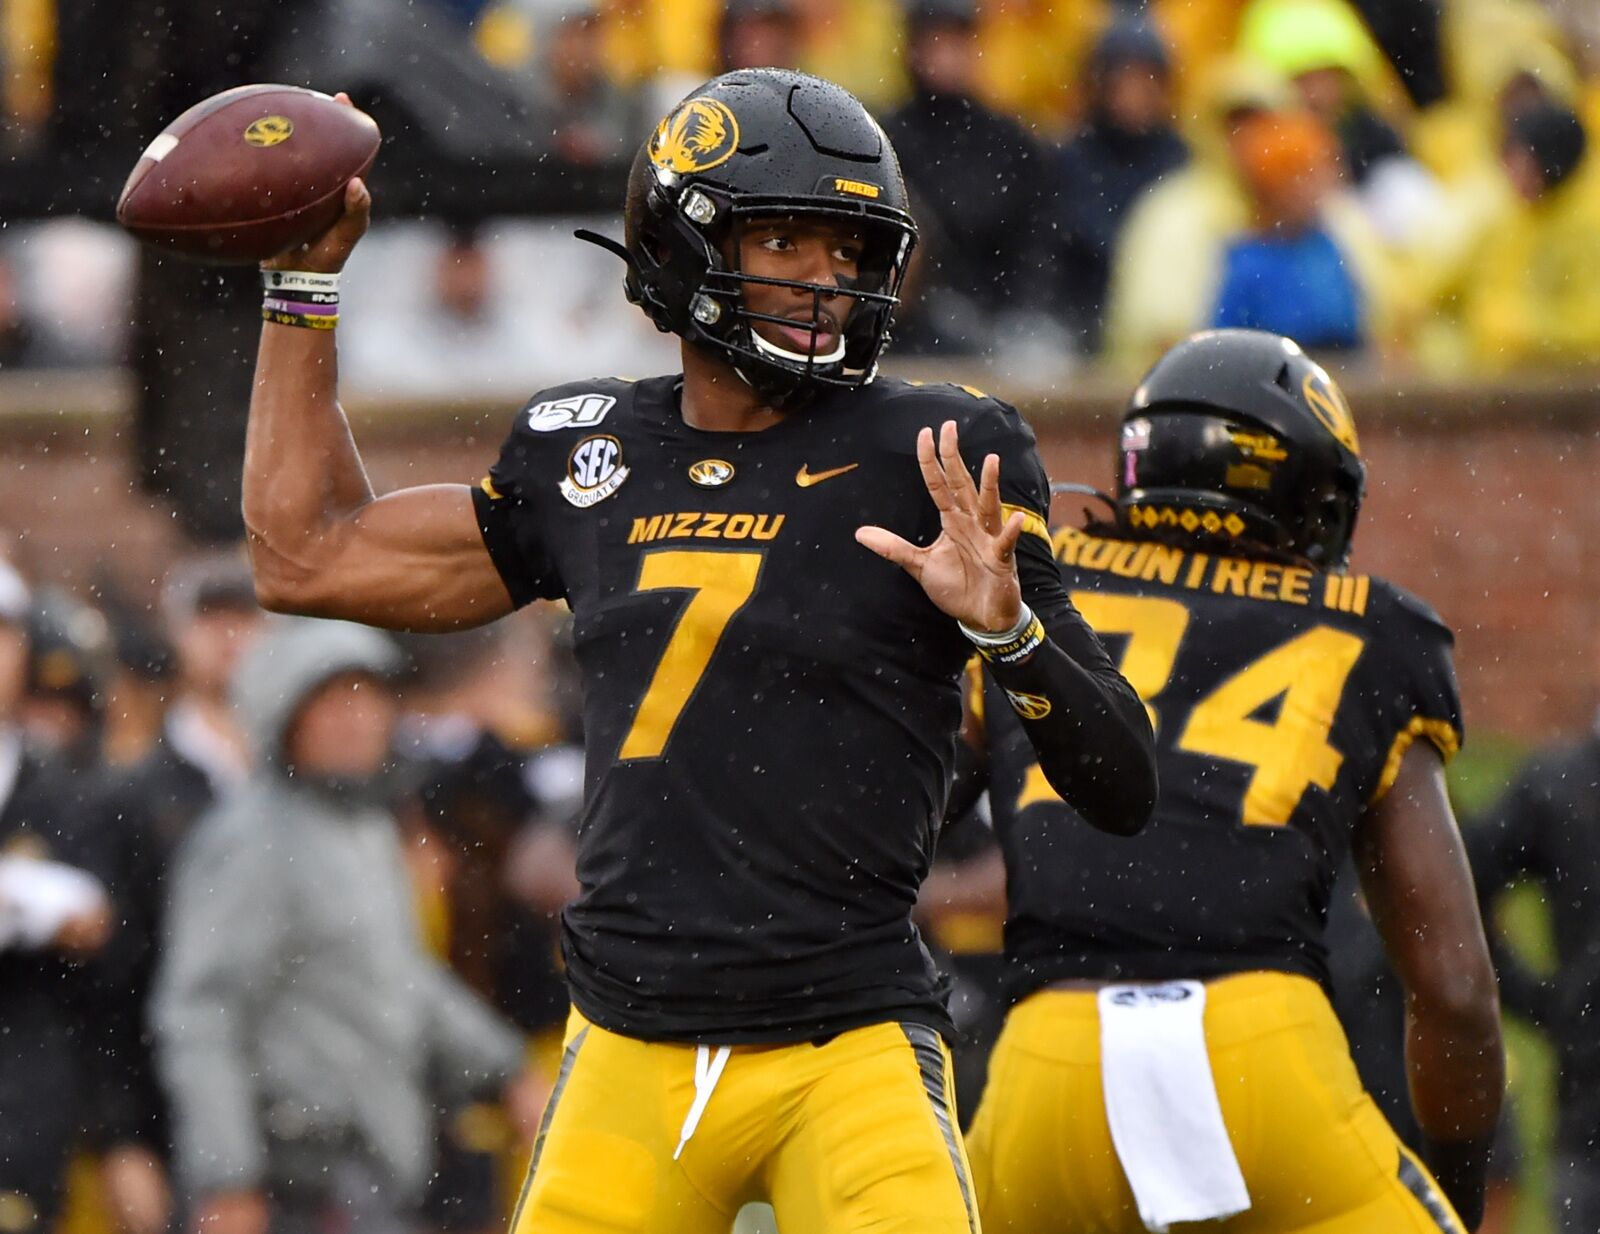 Mizzou Football: Just how healthy is Kelly Bryant?